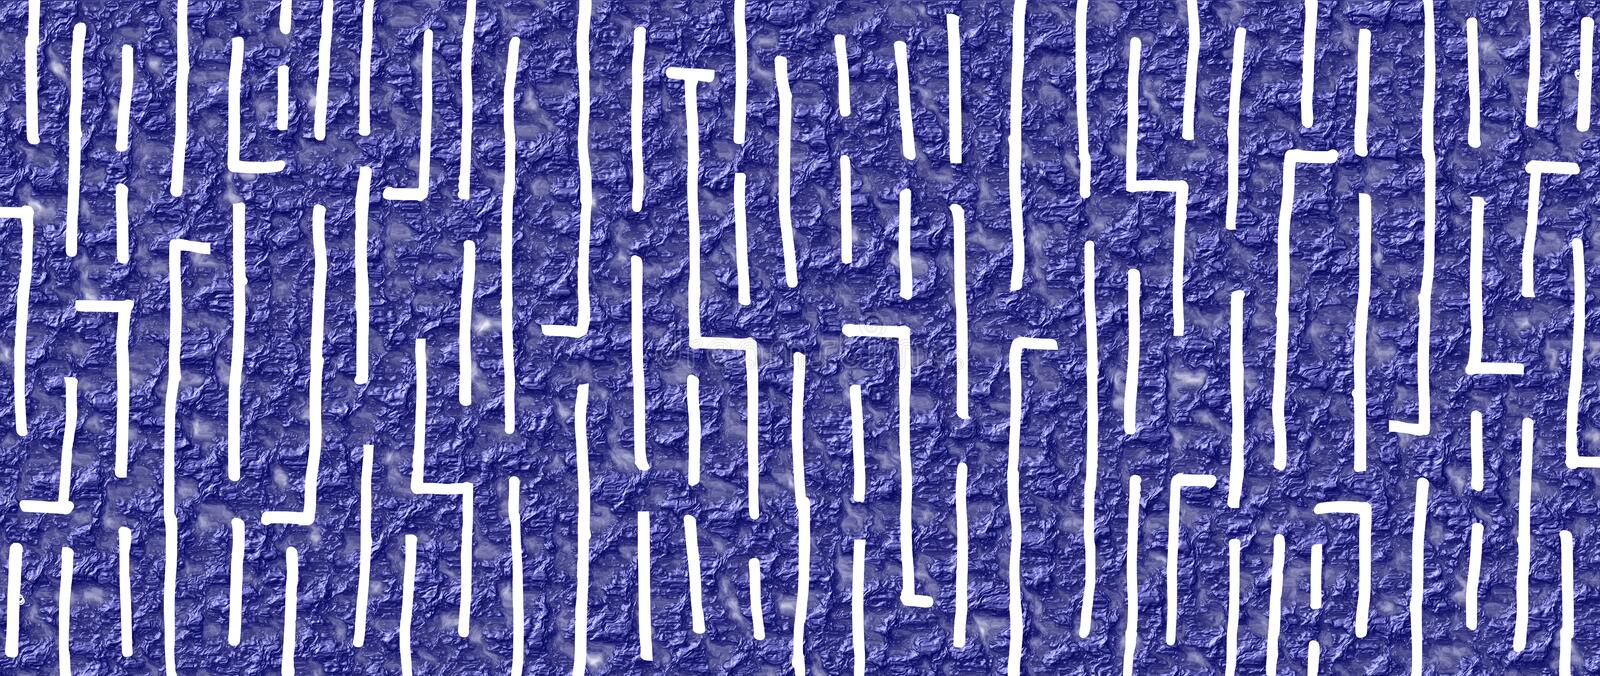 Hand drawn maze style design 19 with navy blue wrinkled varnish background. Artistic vector graphic may be used as standalone or with other design elements or stock illustration